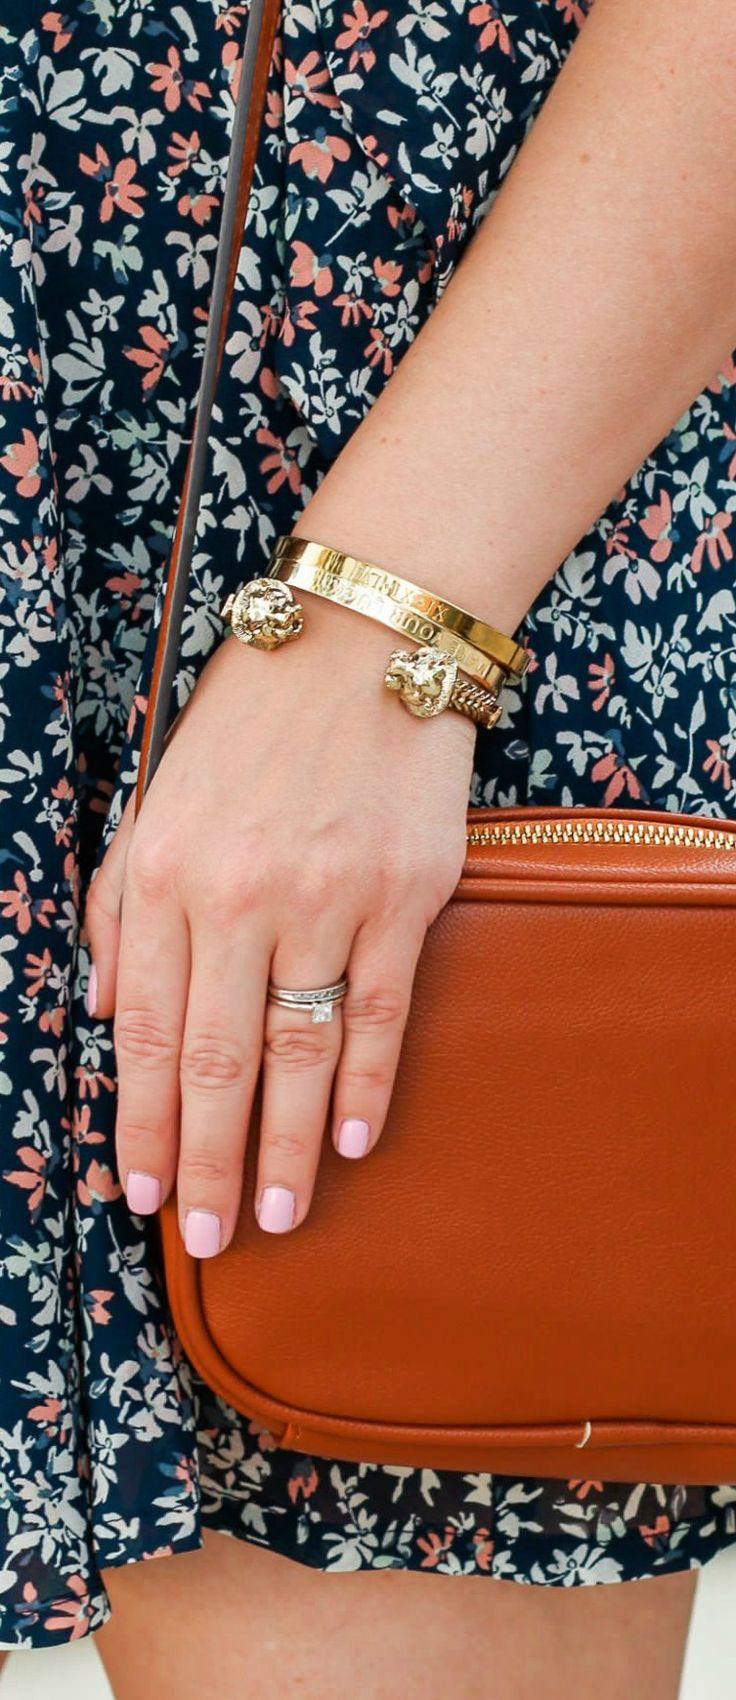 Baublebar gold lion cuff bracelet, engraved gold bracelets, Make Your Luck bracelet, floral dress, and cognac handbag styled in a affordable spring outfit idea by Florida beauty and style blogger Ashley Brooke Nicholas #MyHCLook sponsored by @haircuttery   | Hair Cuttery, blonde hair styling ideas | cute dresses, affordable summer fashion, spring style, gold heels, Sam Edelman, Baublebar, Abercrombie & Fitch, colorful stairs, preppy fashion, preppy style